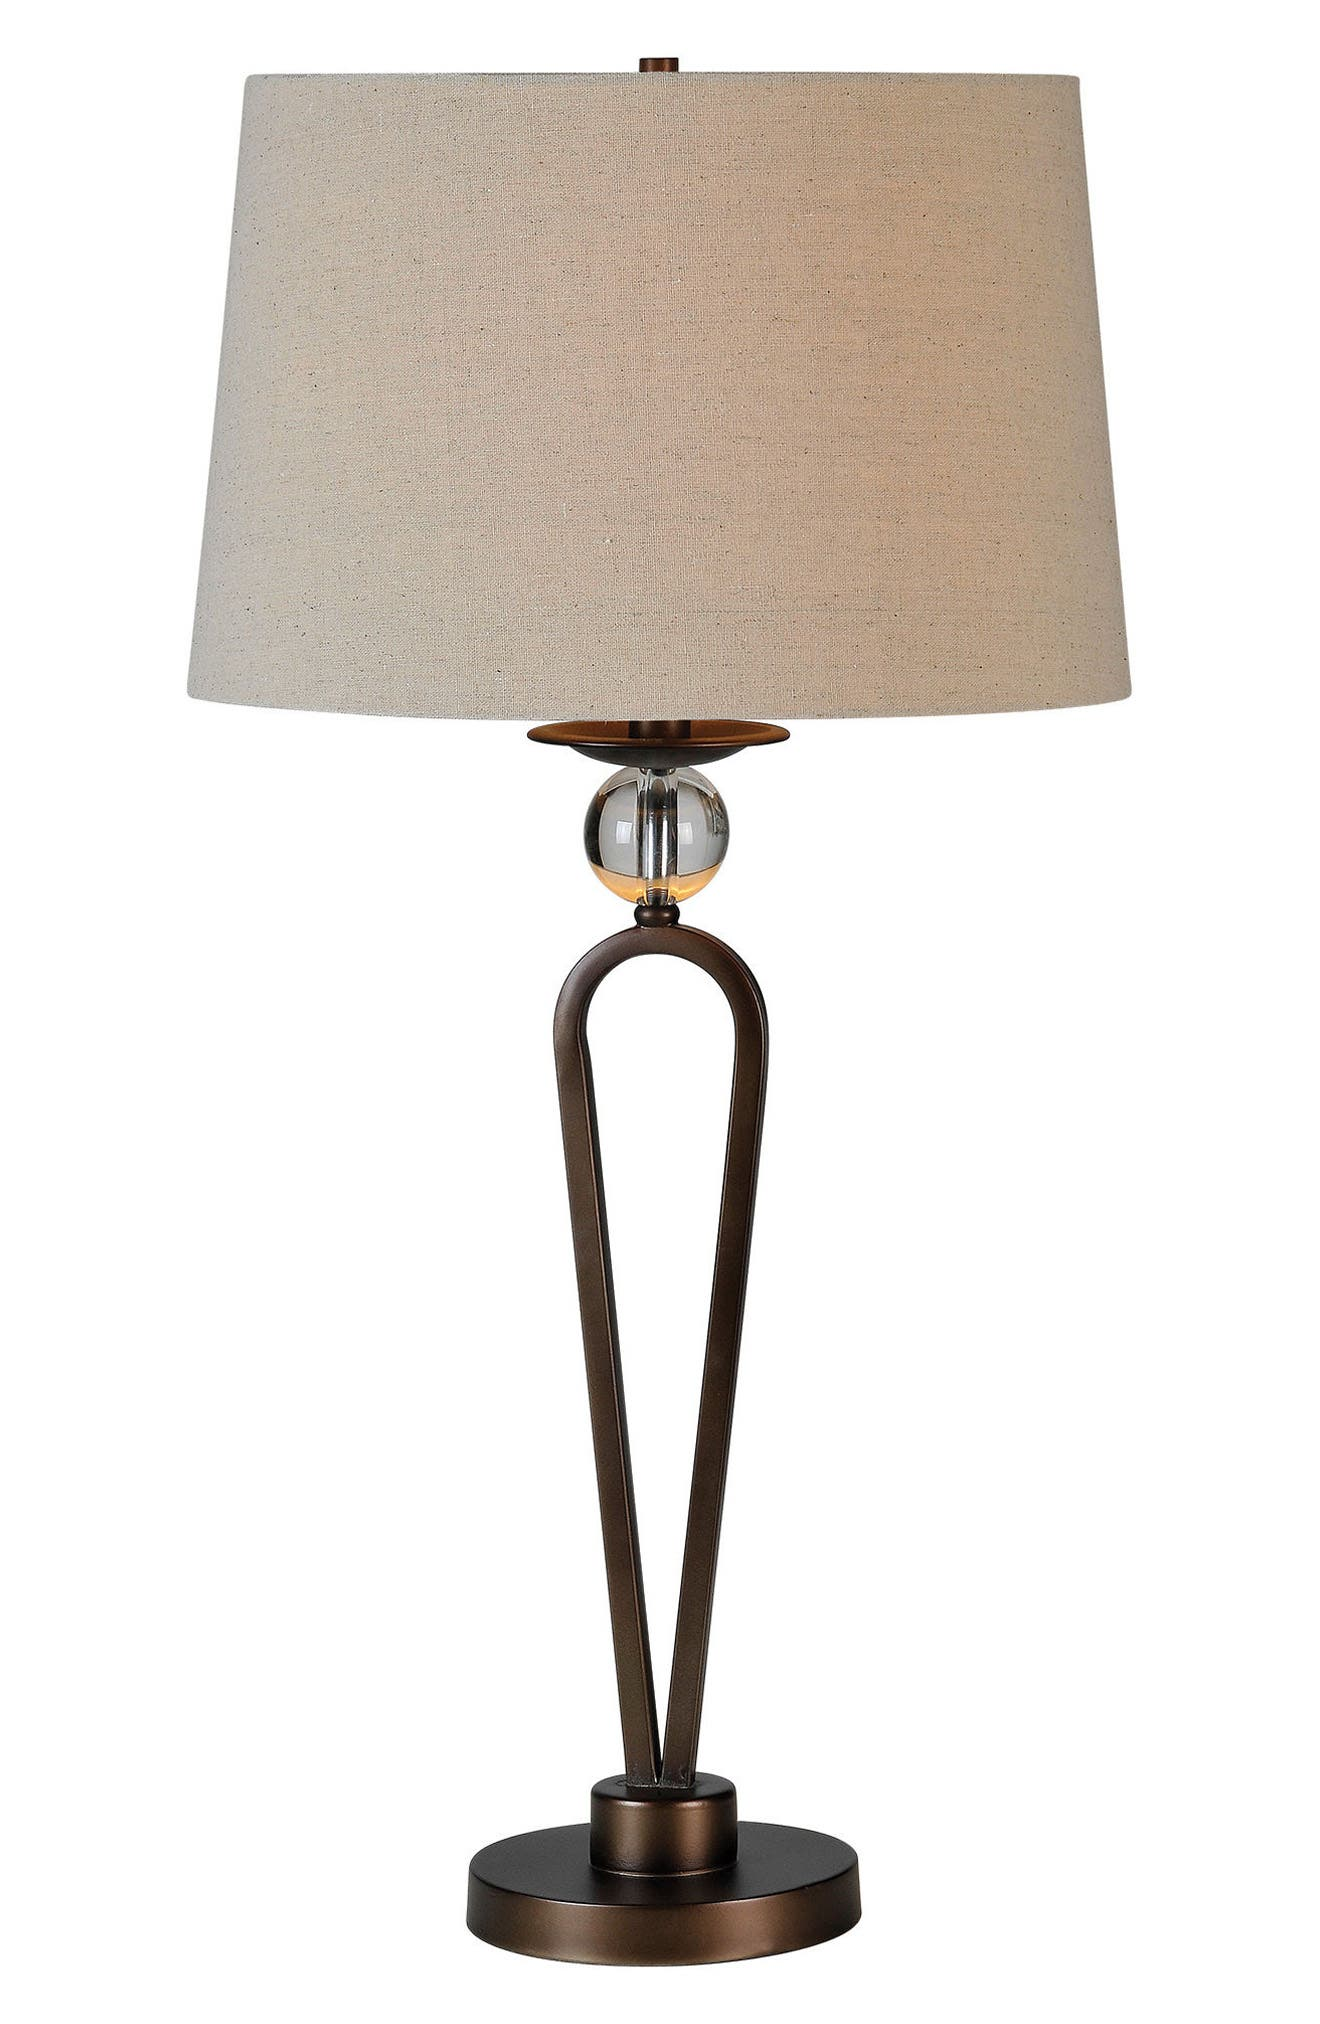 Pembroke Table Lamp,                             Main thumbnail 1, color,                             Bronze